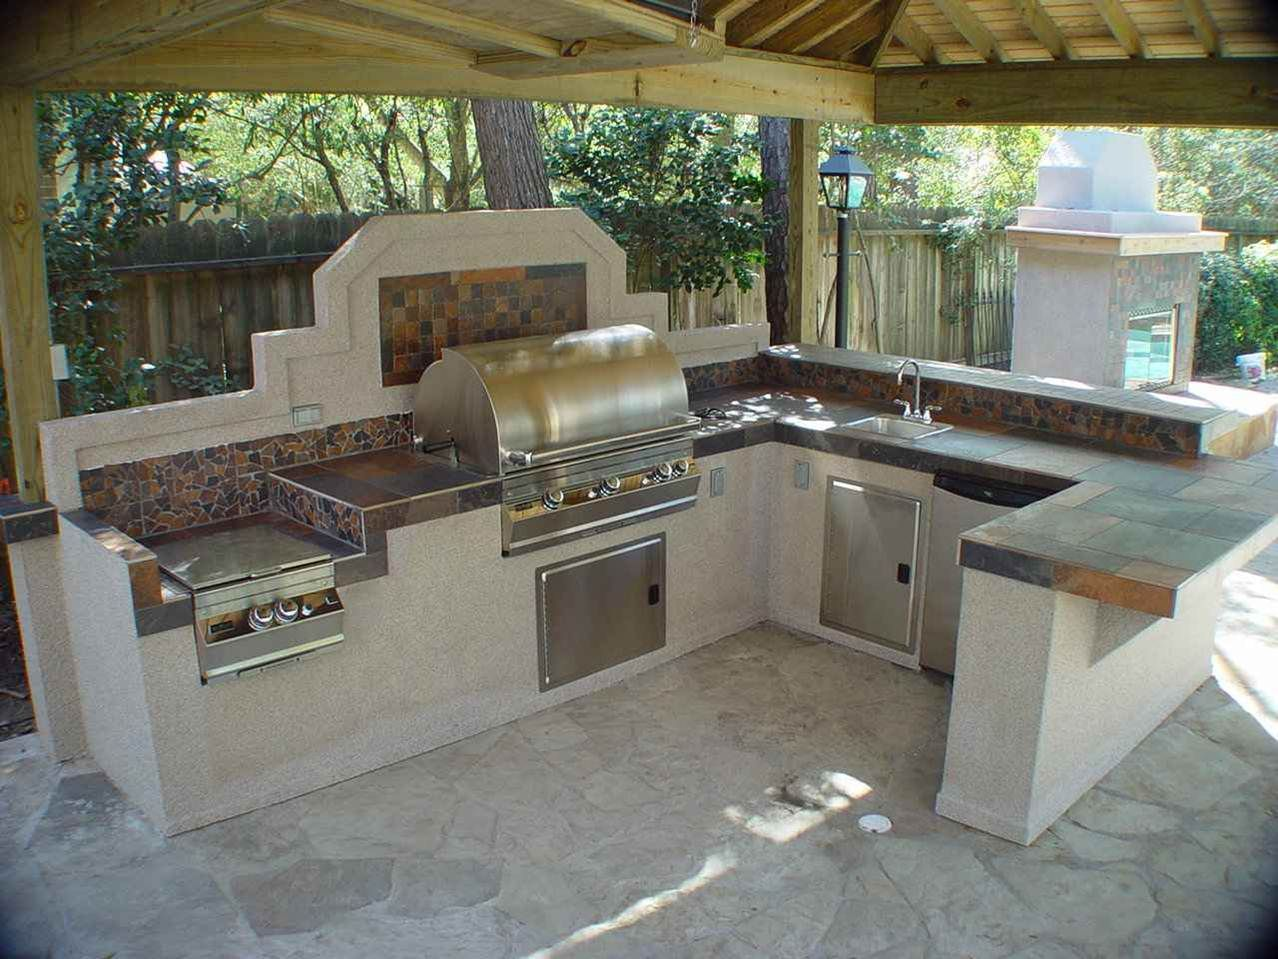 prefab outdoor kitchens country kitchen sink galleria ideas small slab u shape beach houses with pool